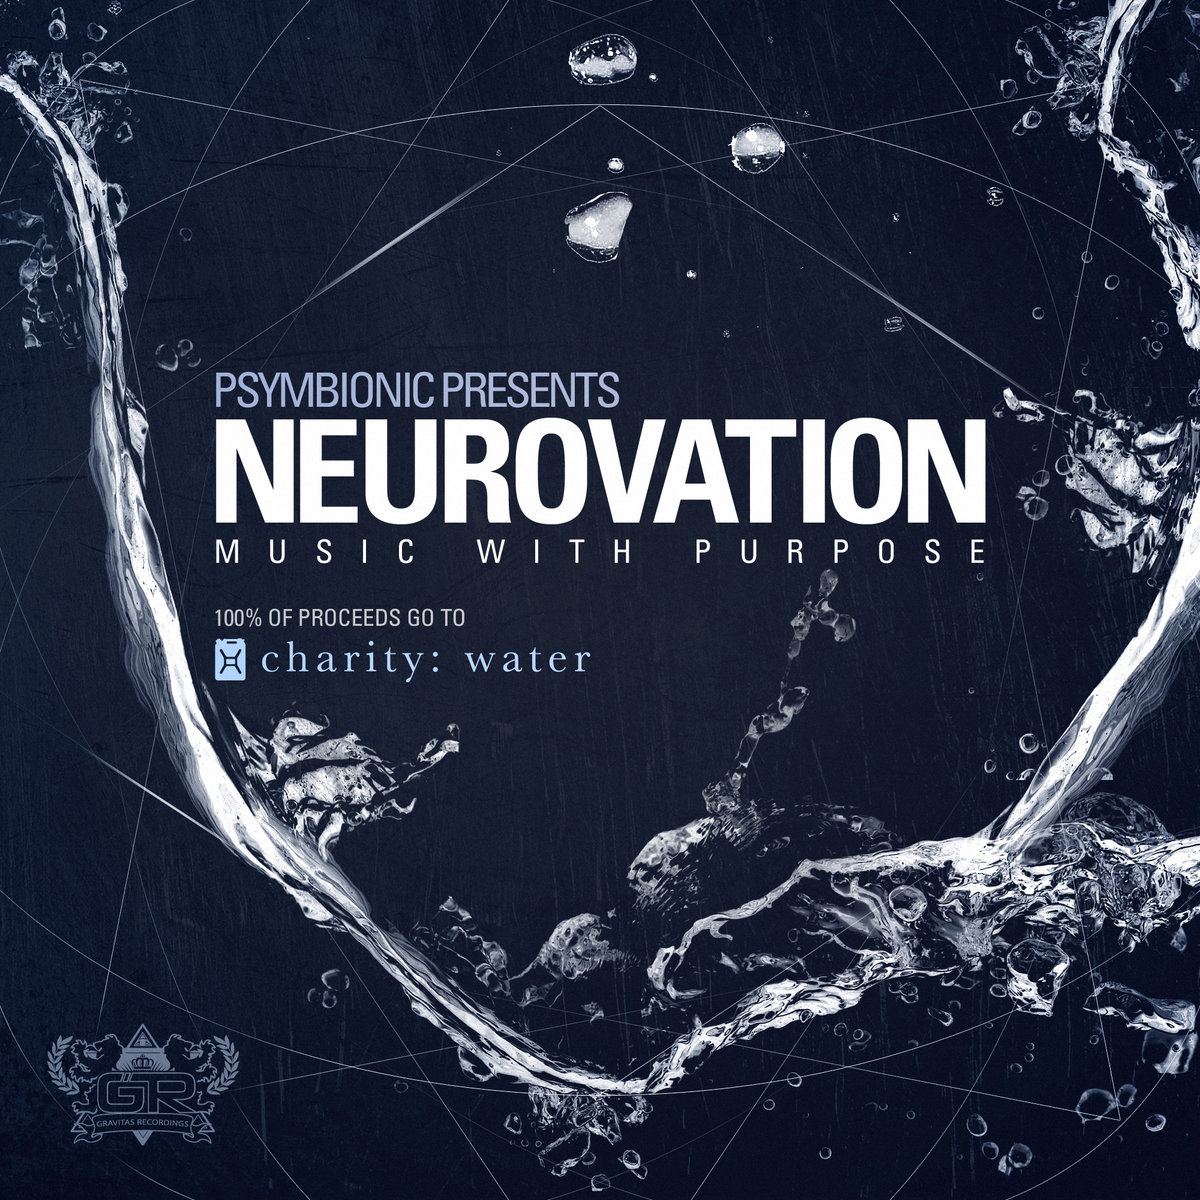 Psymbionic - Luminous @ 'Psymbionic Presents: Neurovation' album (cryptex, glitch hop)